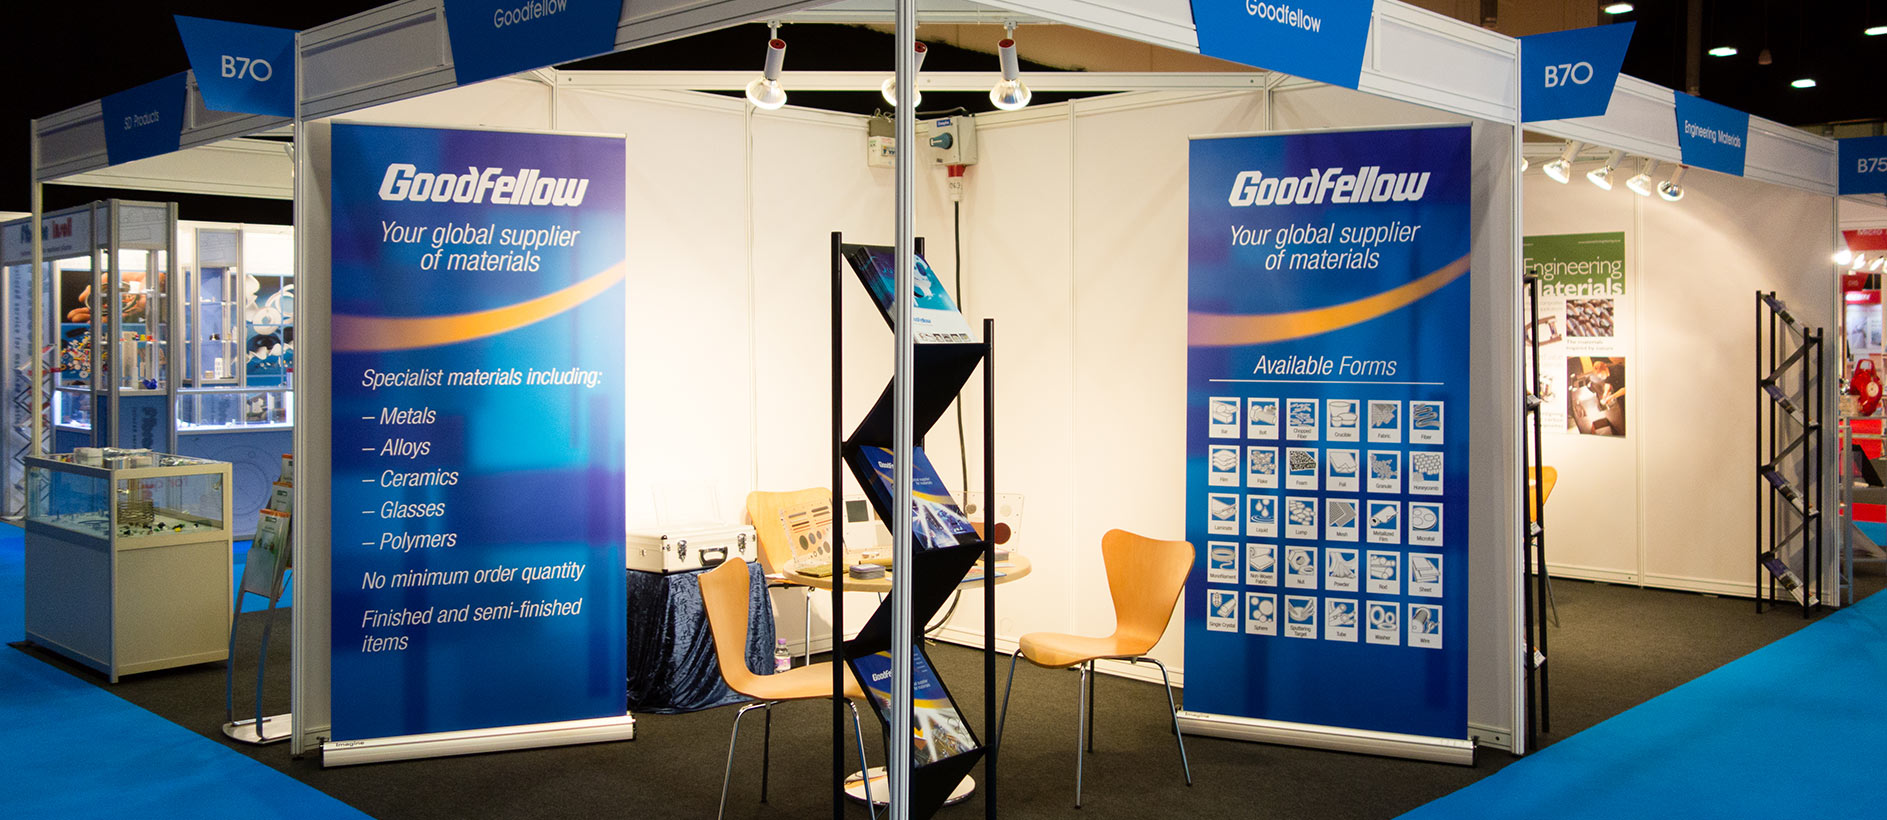 GoodFellow shell scheme display at an exhibition